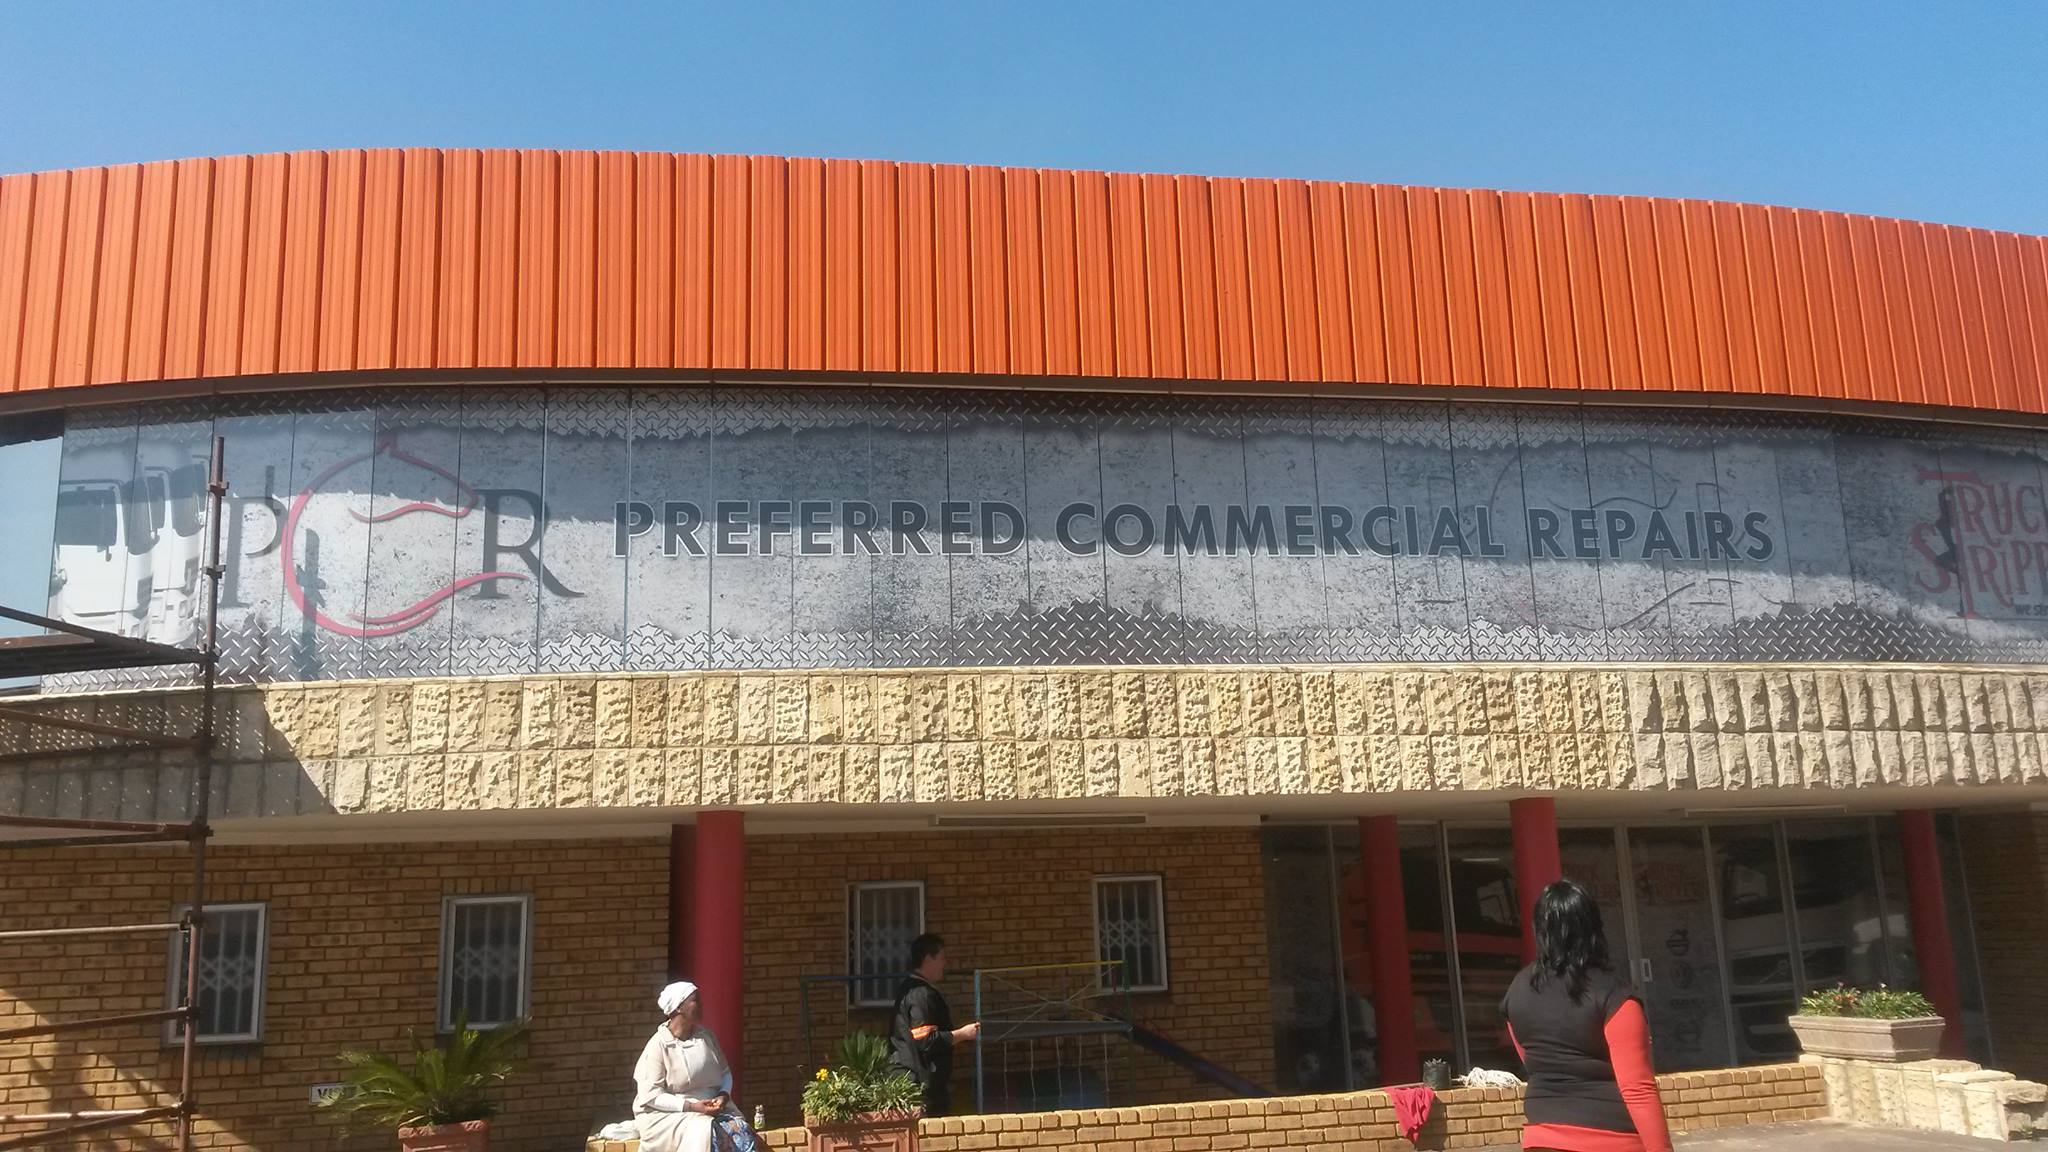 Preferred Commercial Repairs